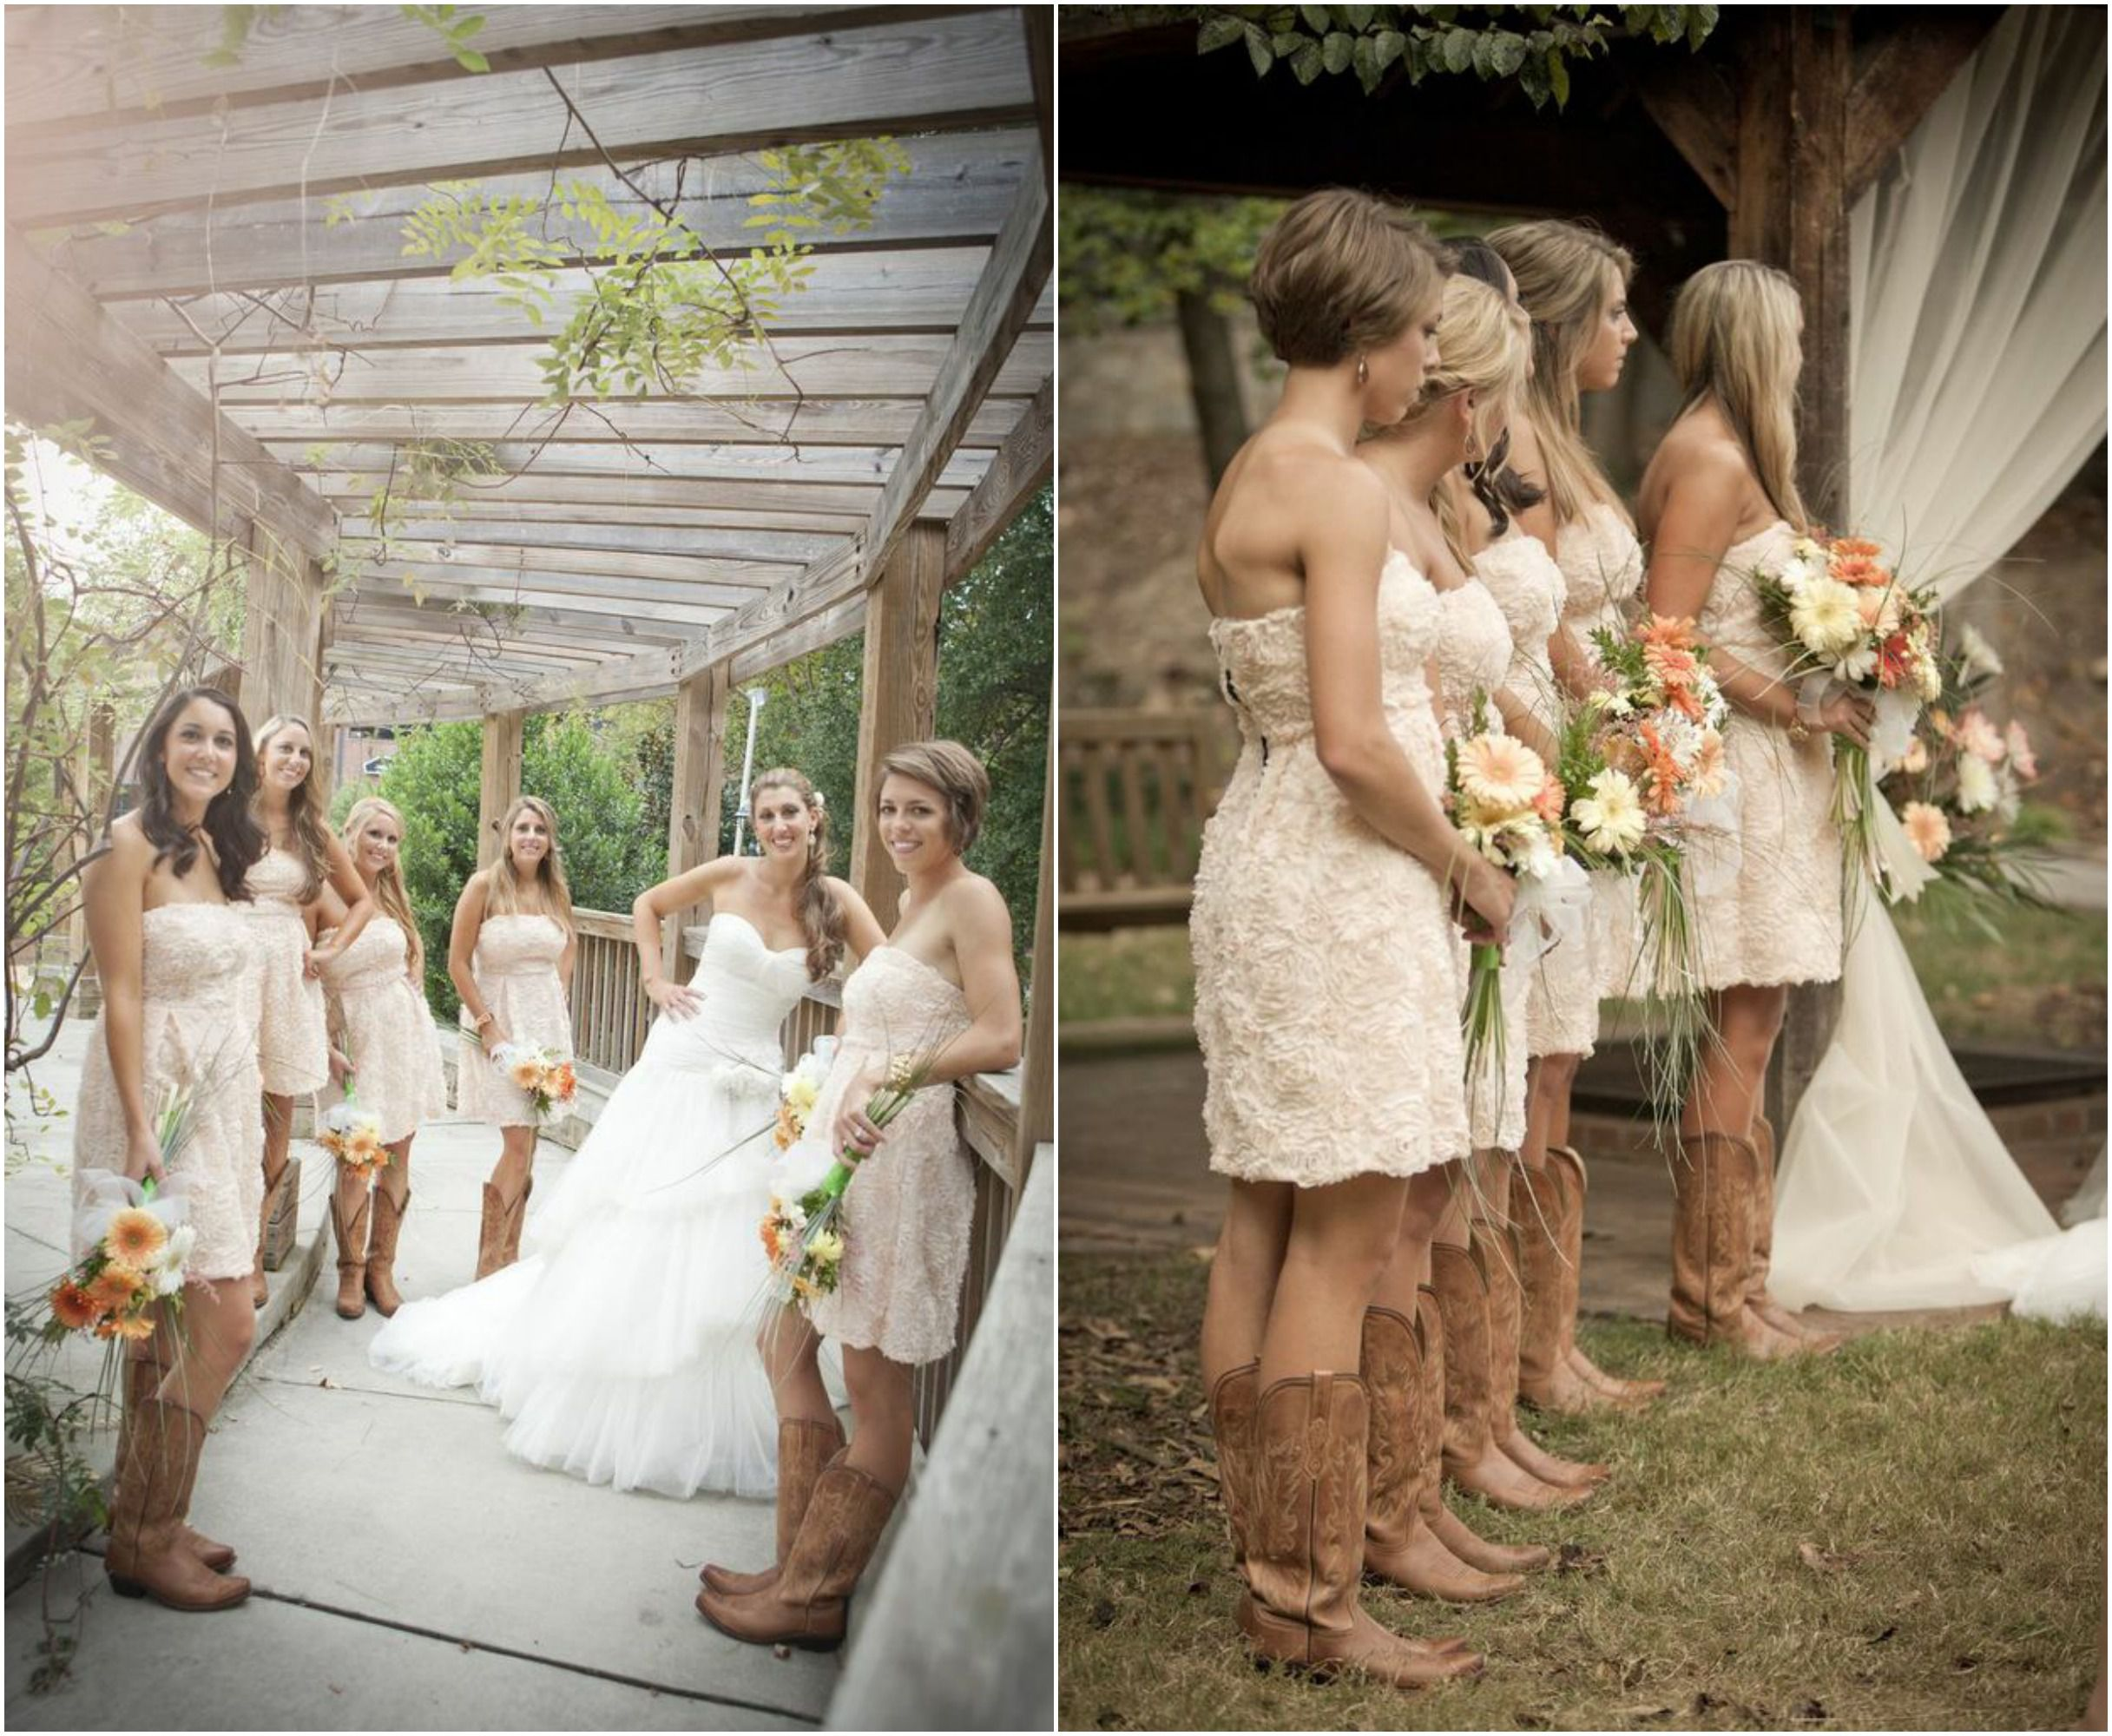 Rustic Wedding With Bridesmaids In Cowboy Boots - Rustic Wedding Chic